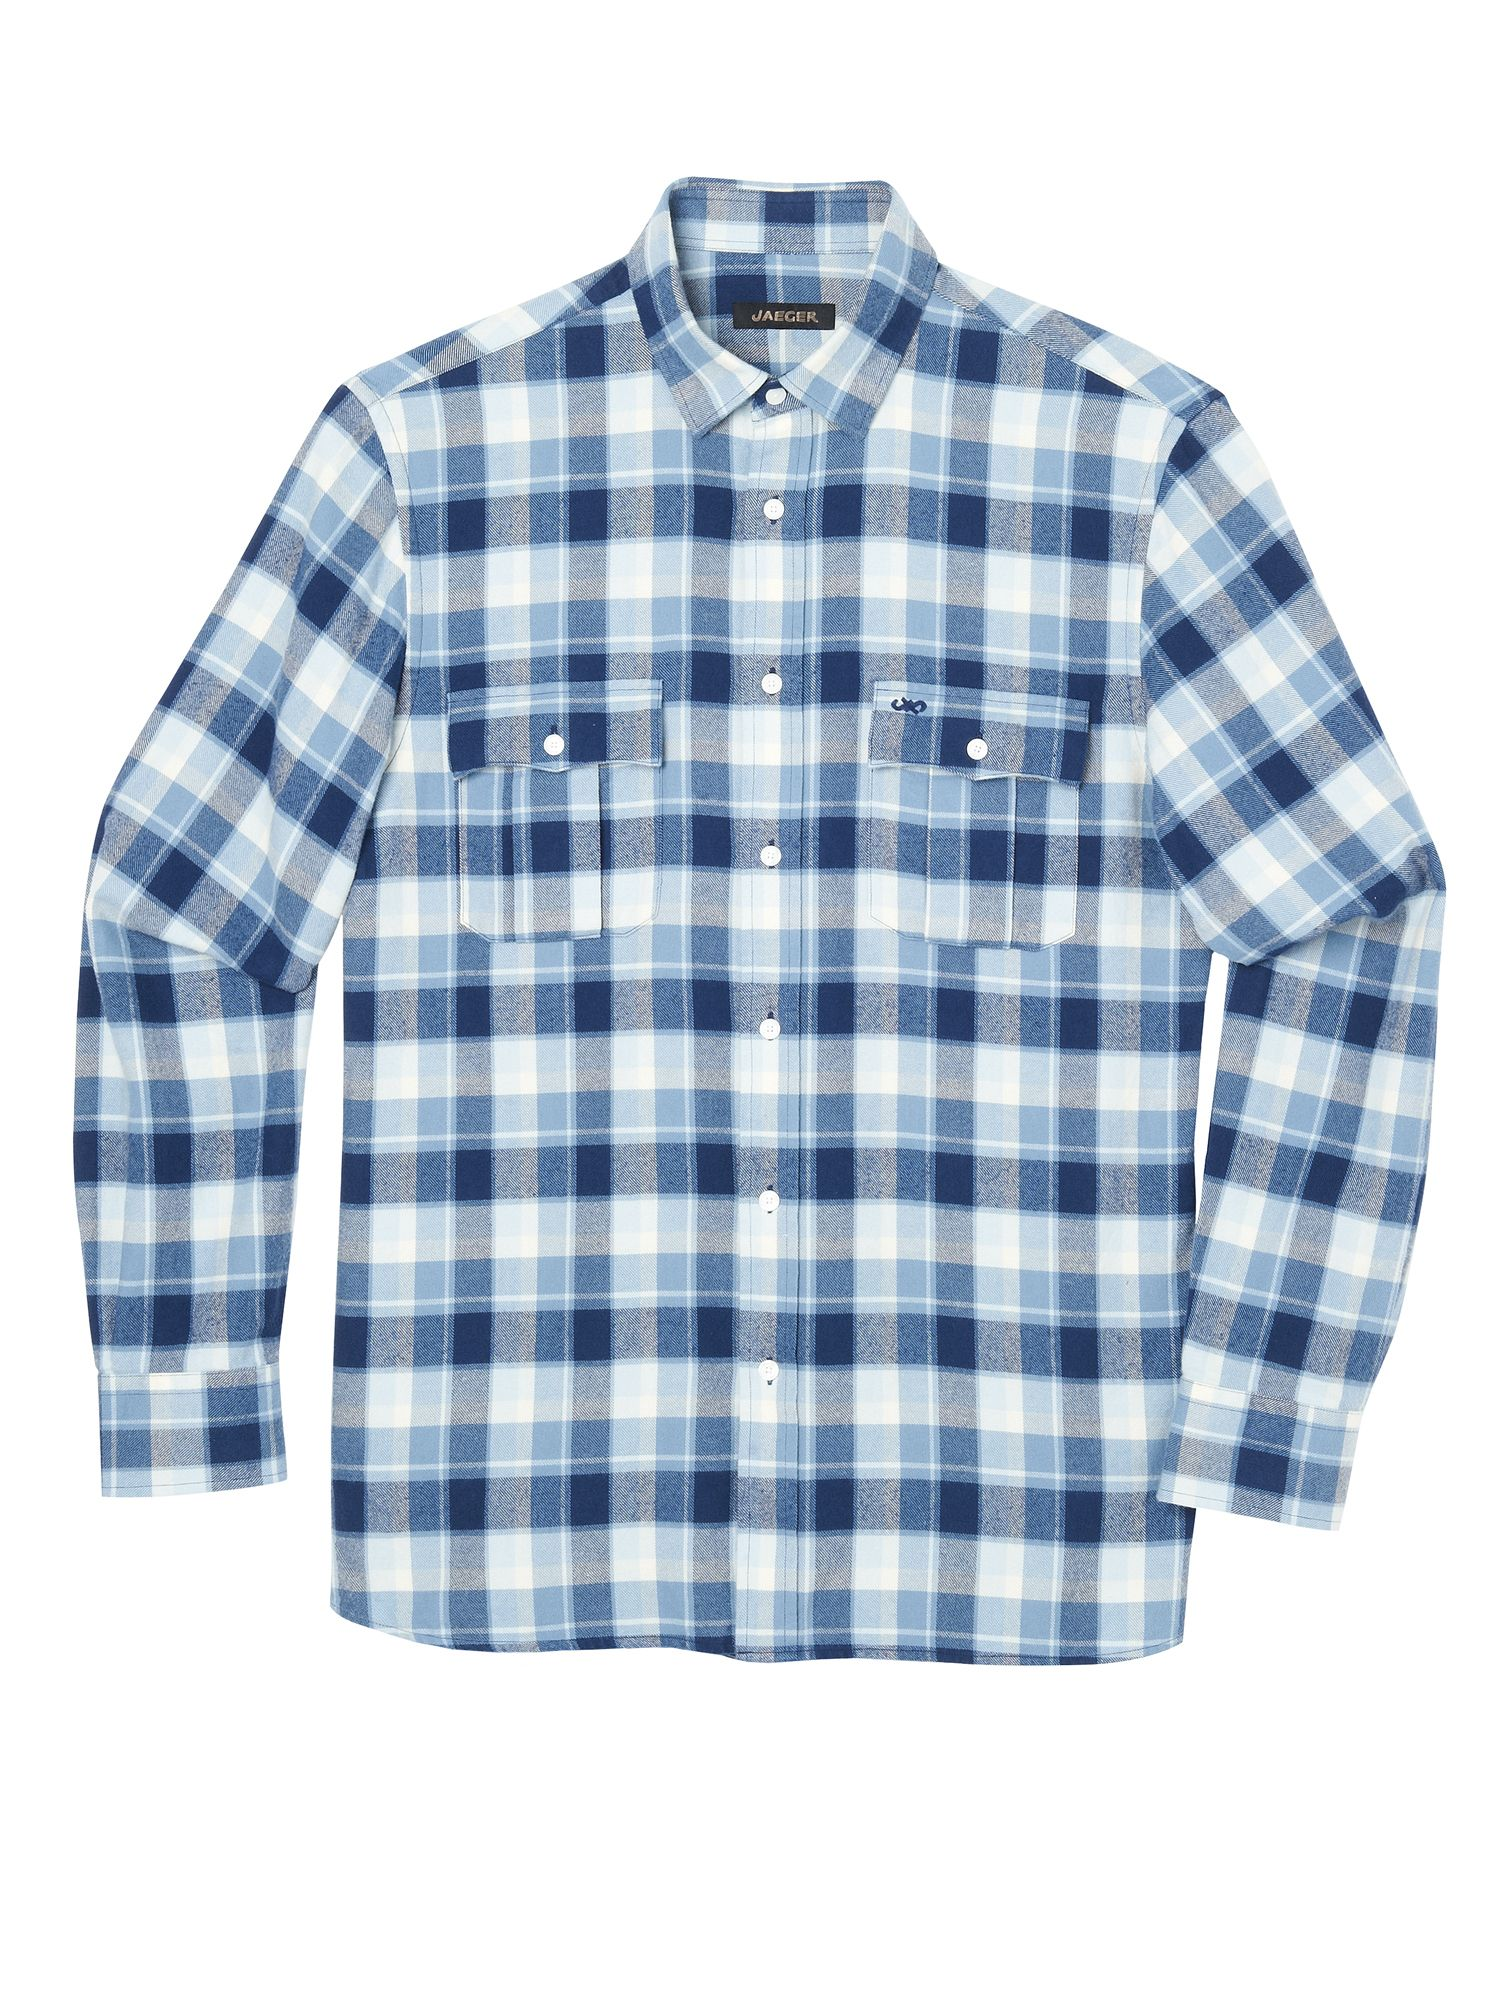 jaeger flannel plaid shirt in blue for men lyst